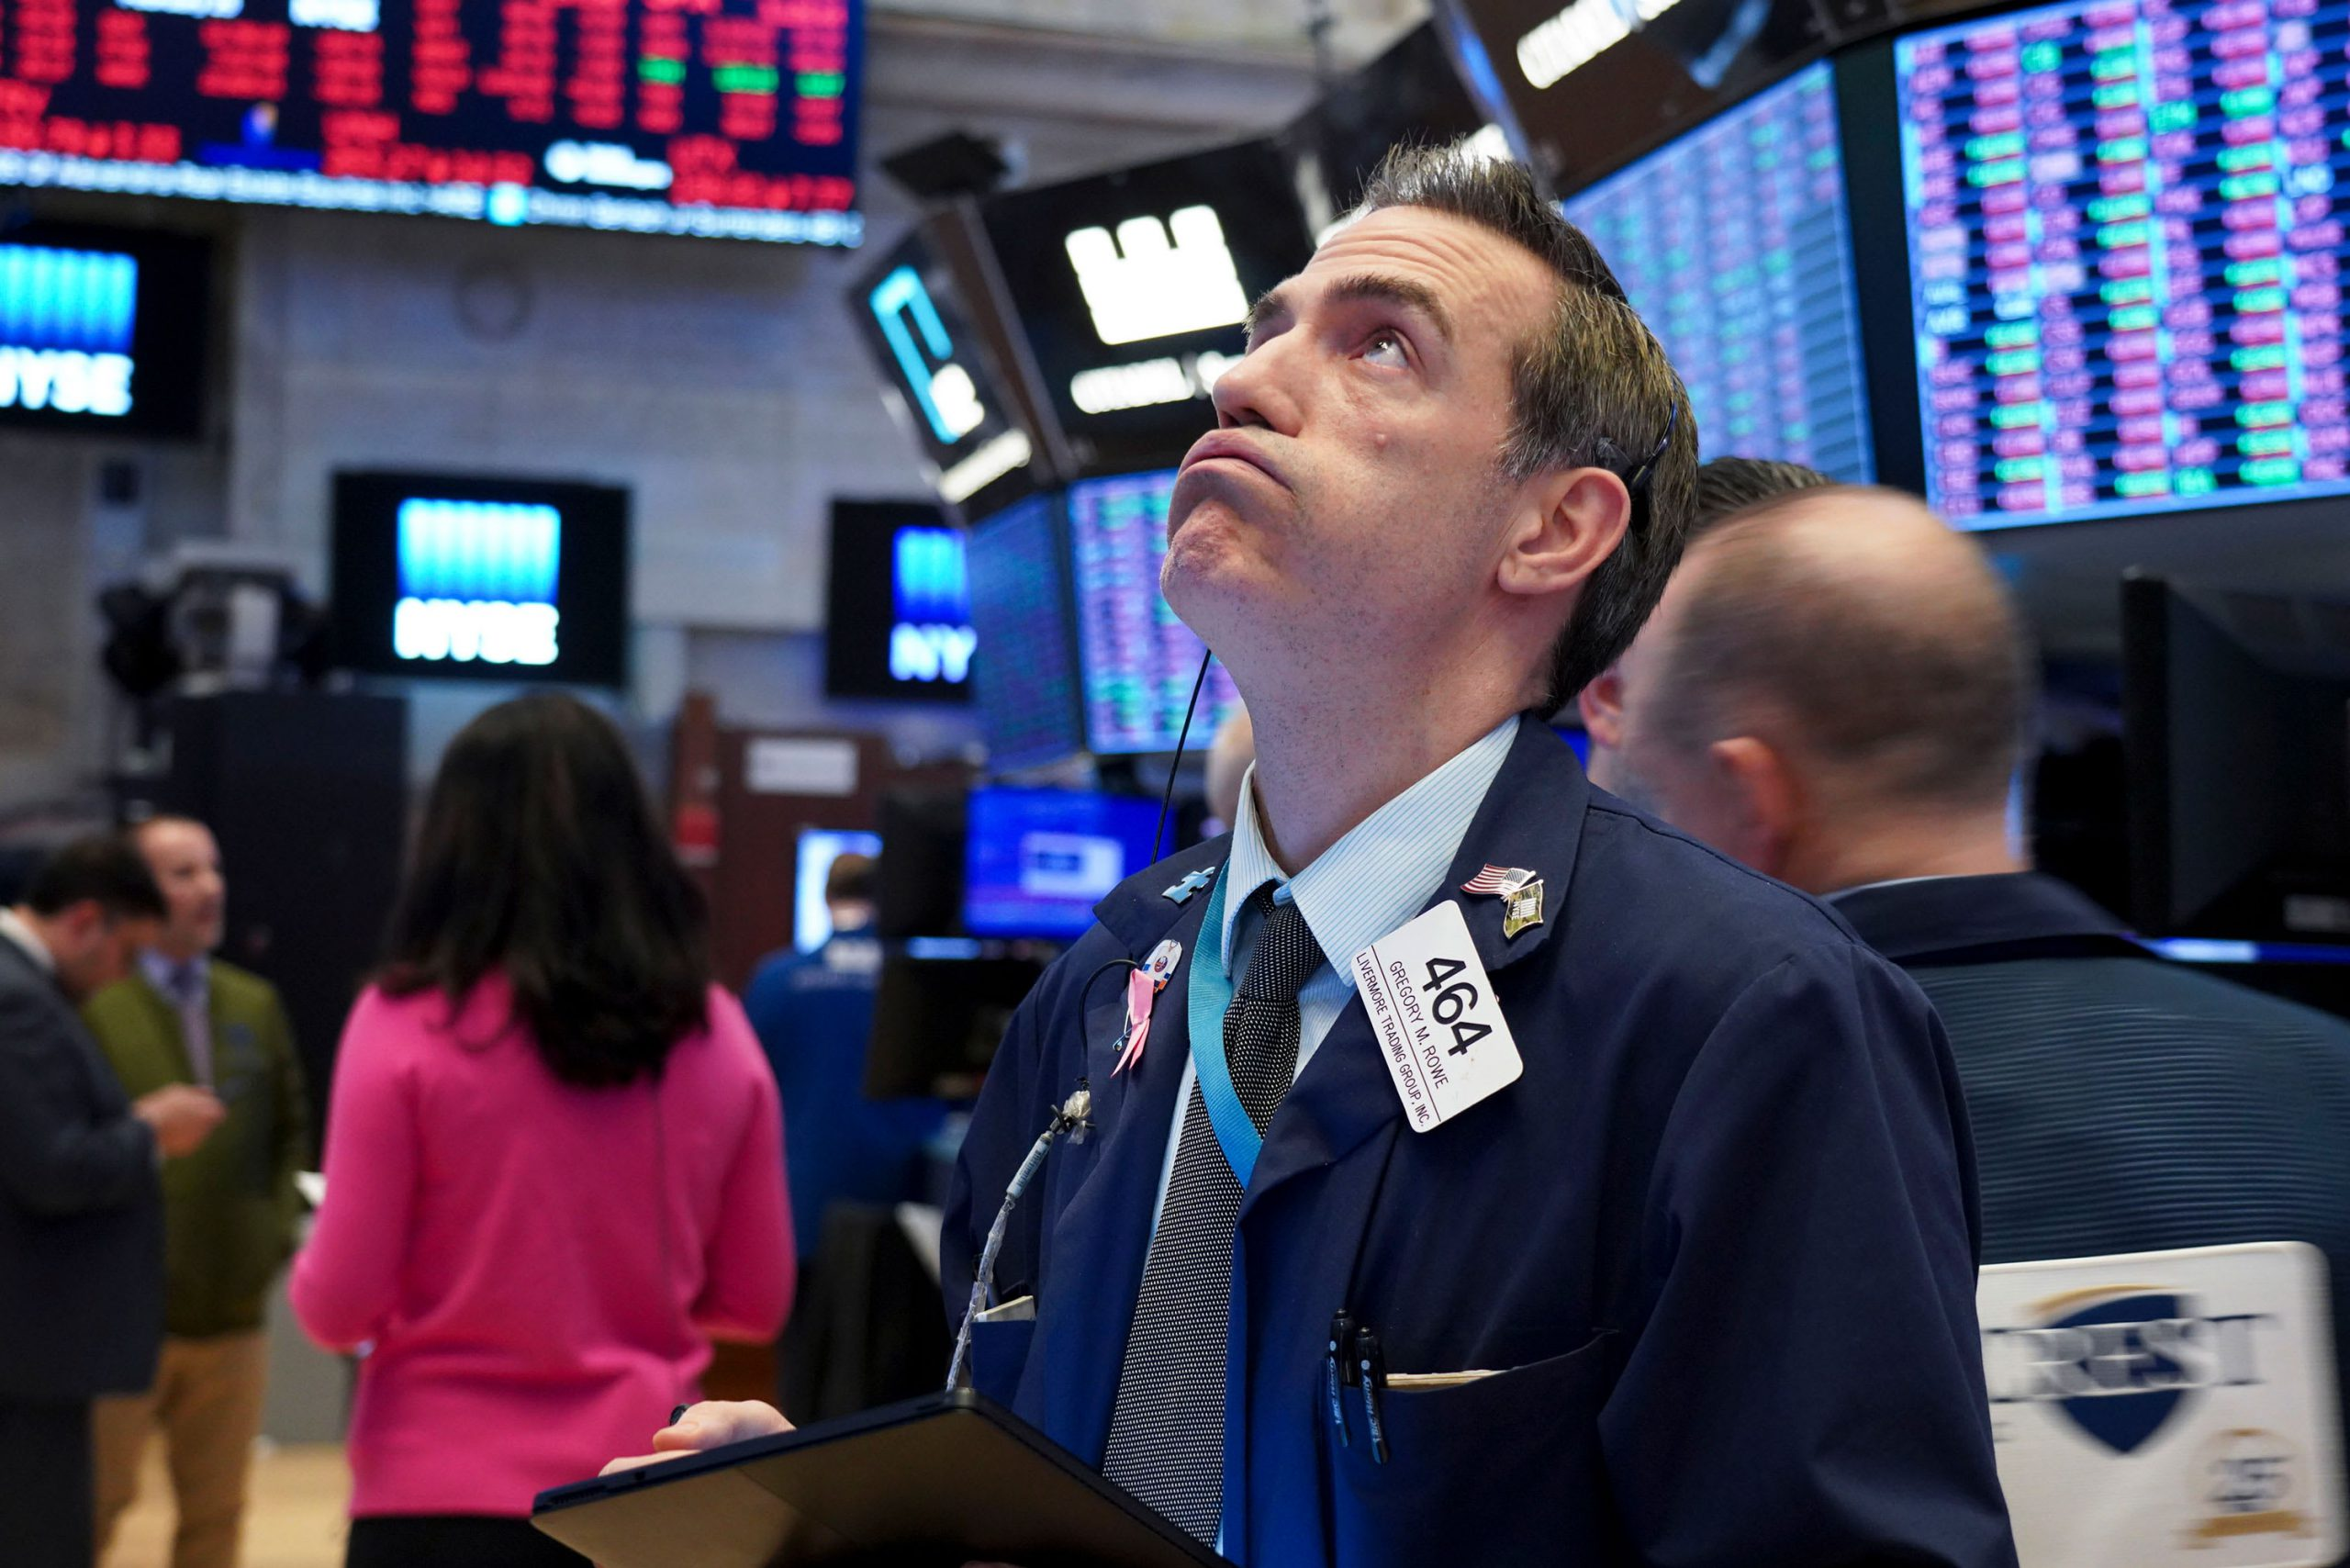 Stock market live updates: Stock futures point to 1% drop at the open